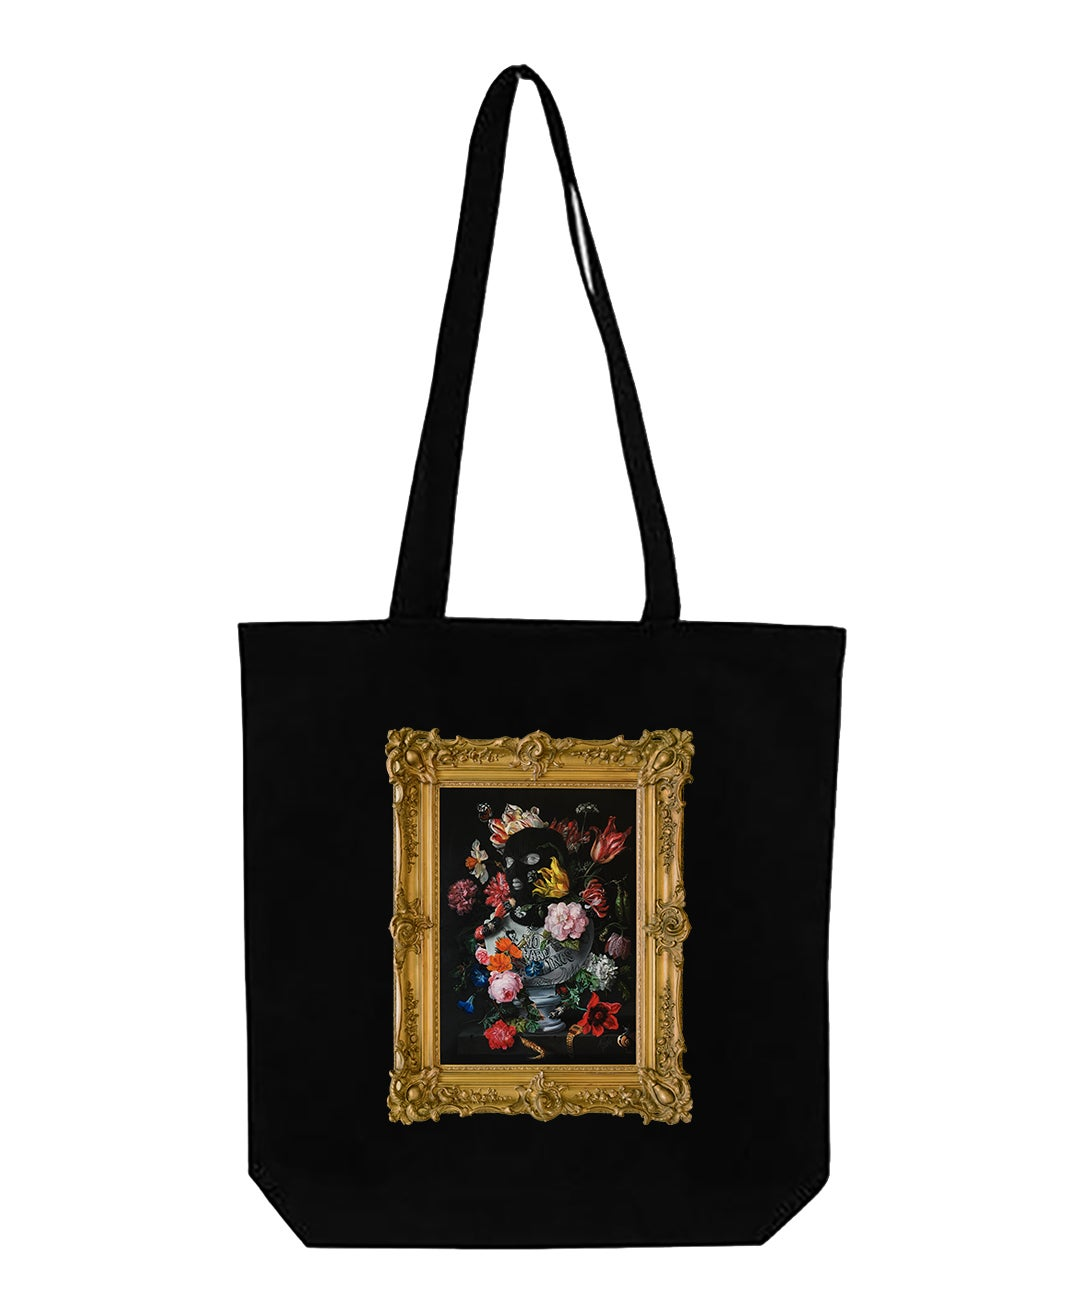 "Image of ""The Look of Love"" Tote Bag"